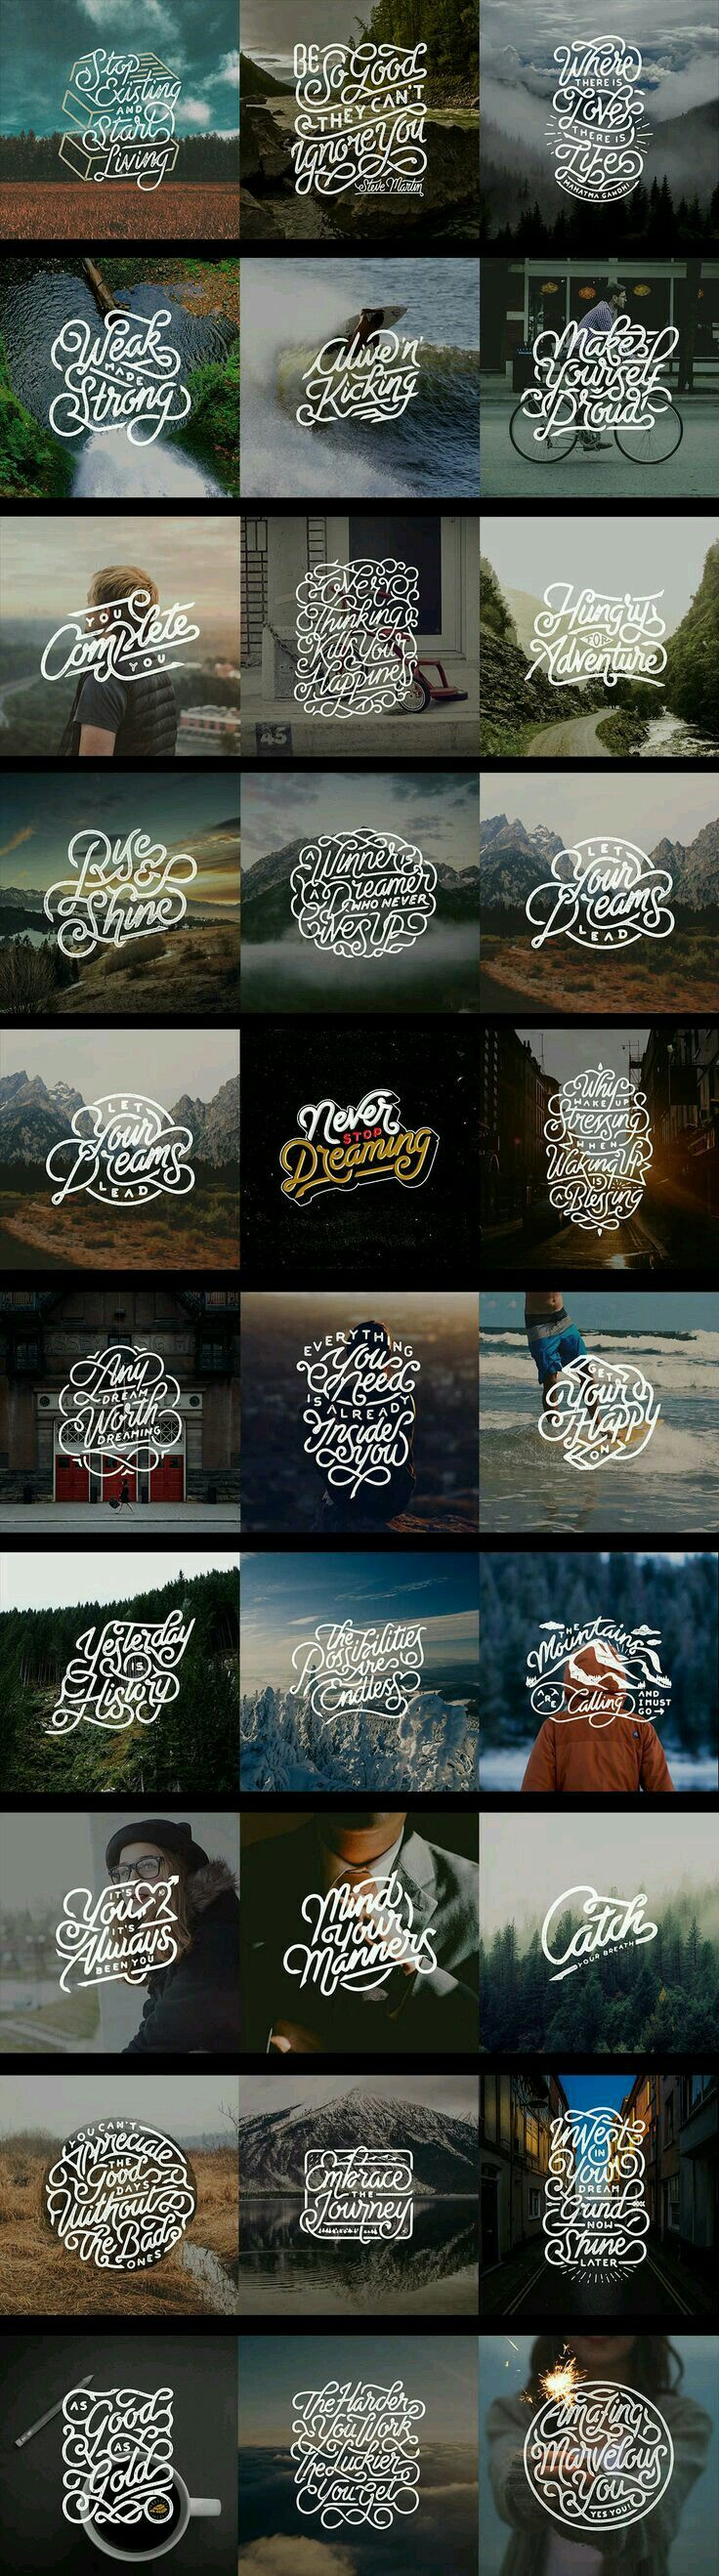 typography ideas